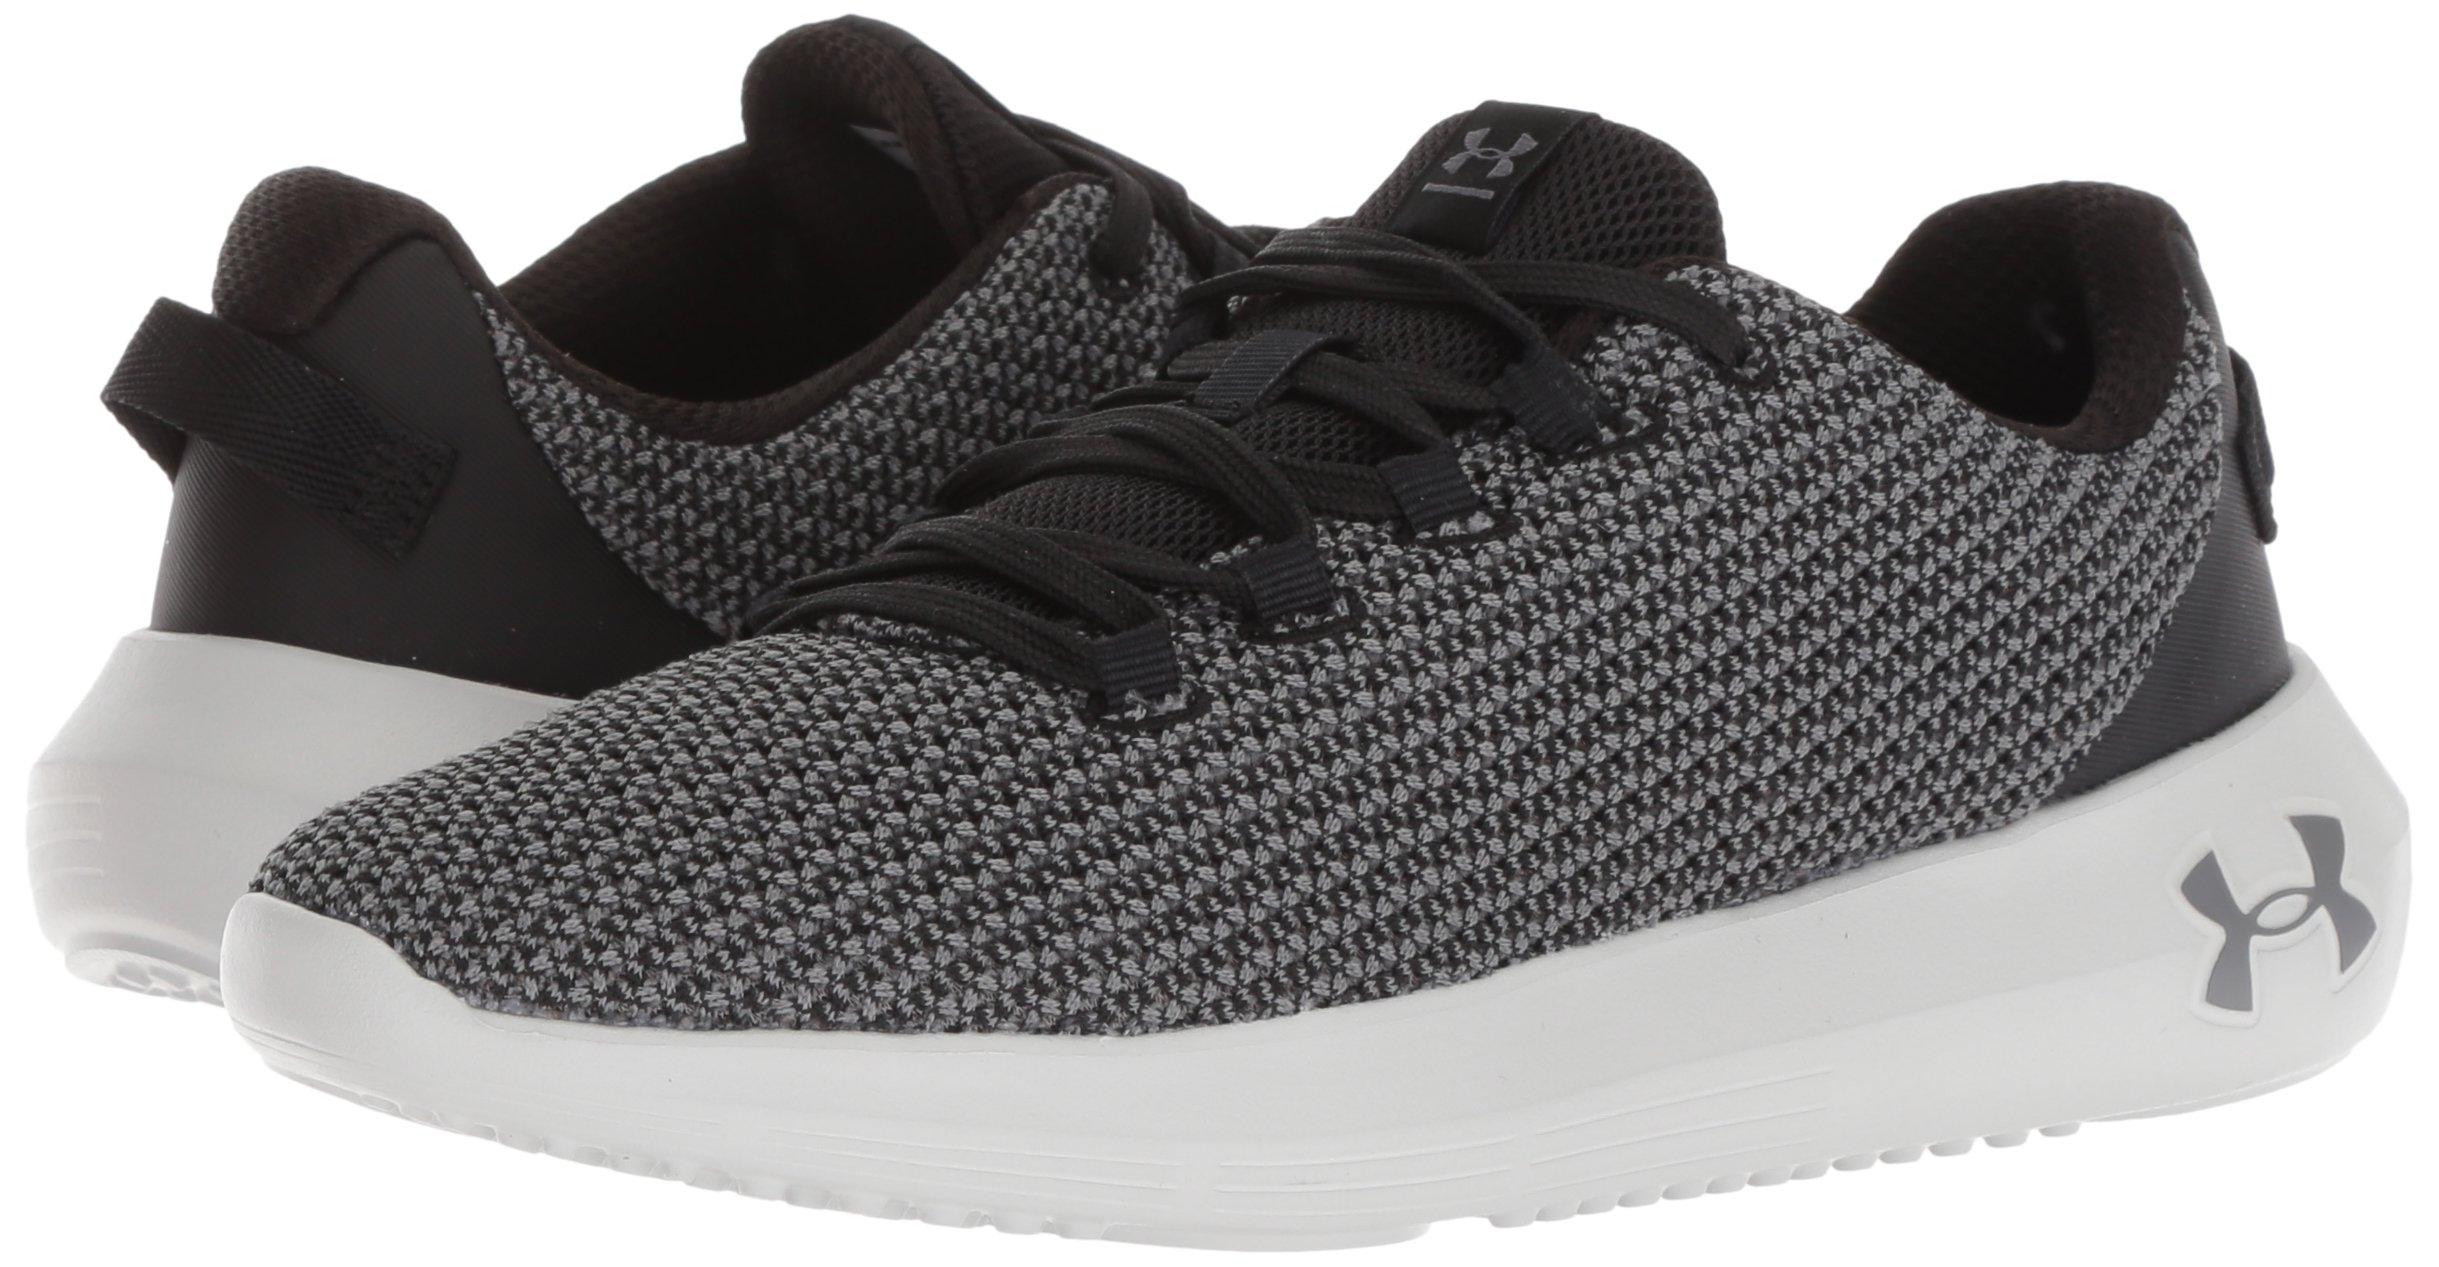 81oF9AaOotL - Under Armour Women's's Ripple Competition Running Shoes